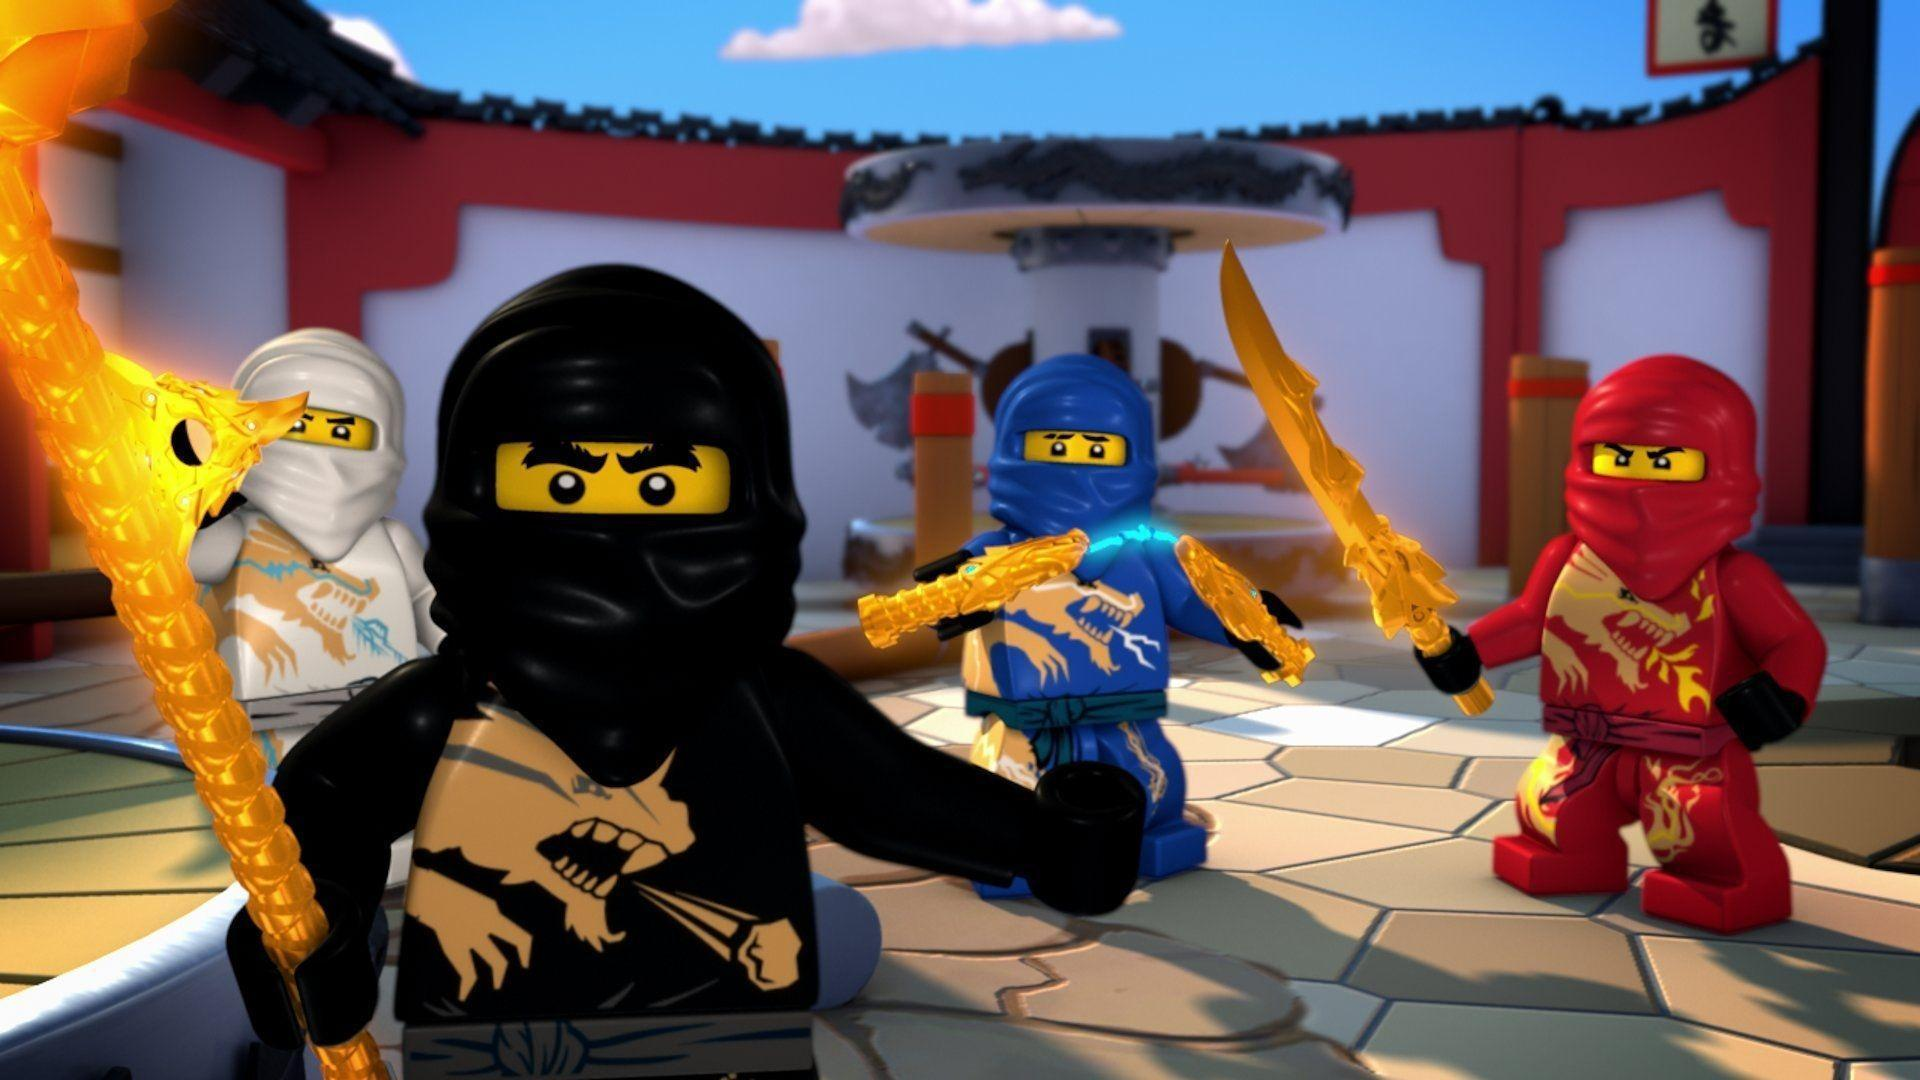 lego ninjago wallpaper high - photo #15